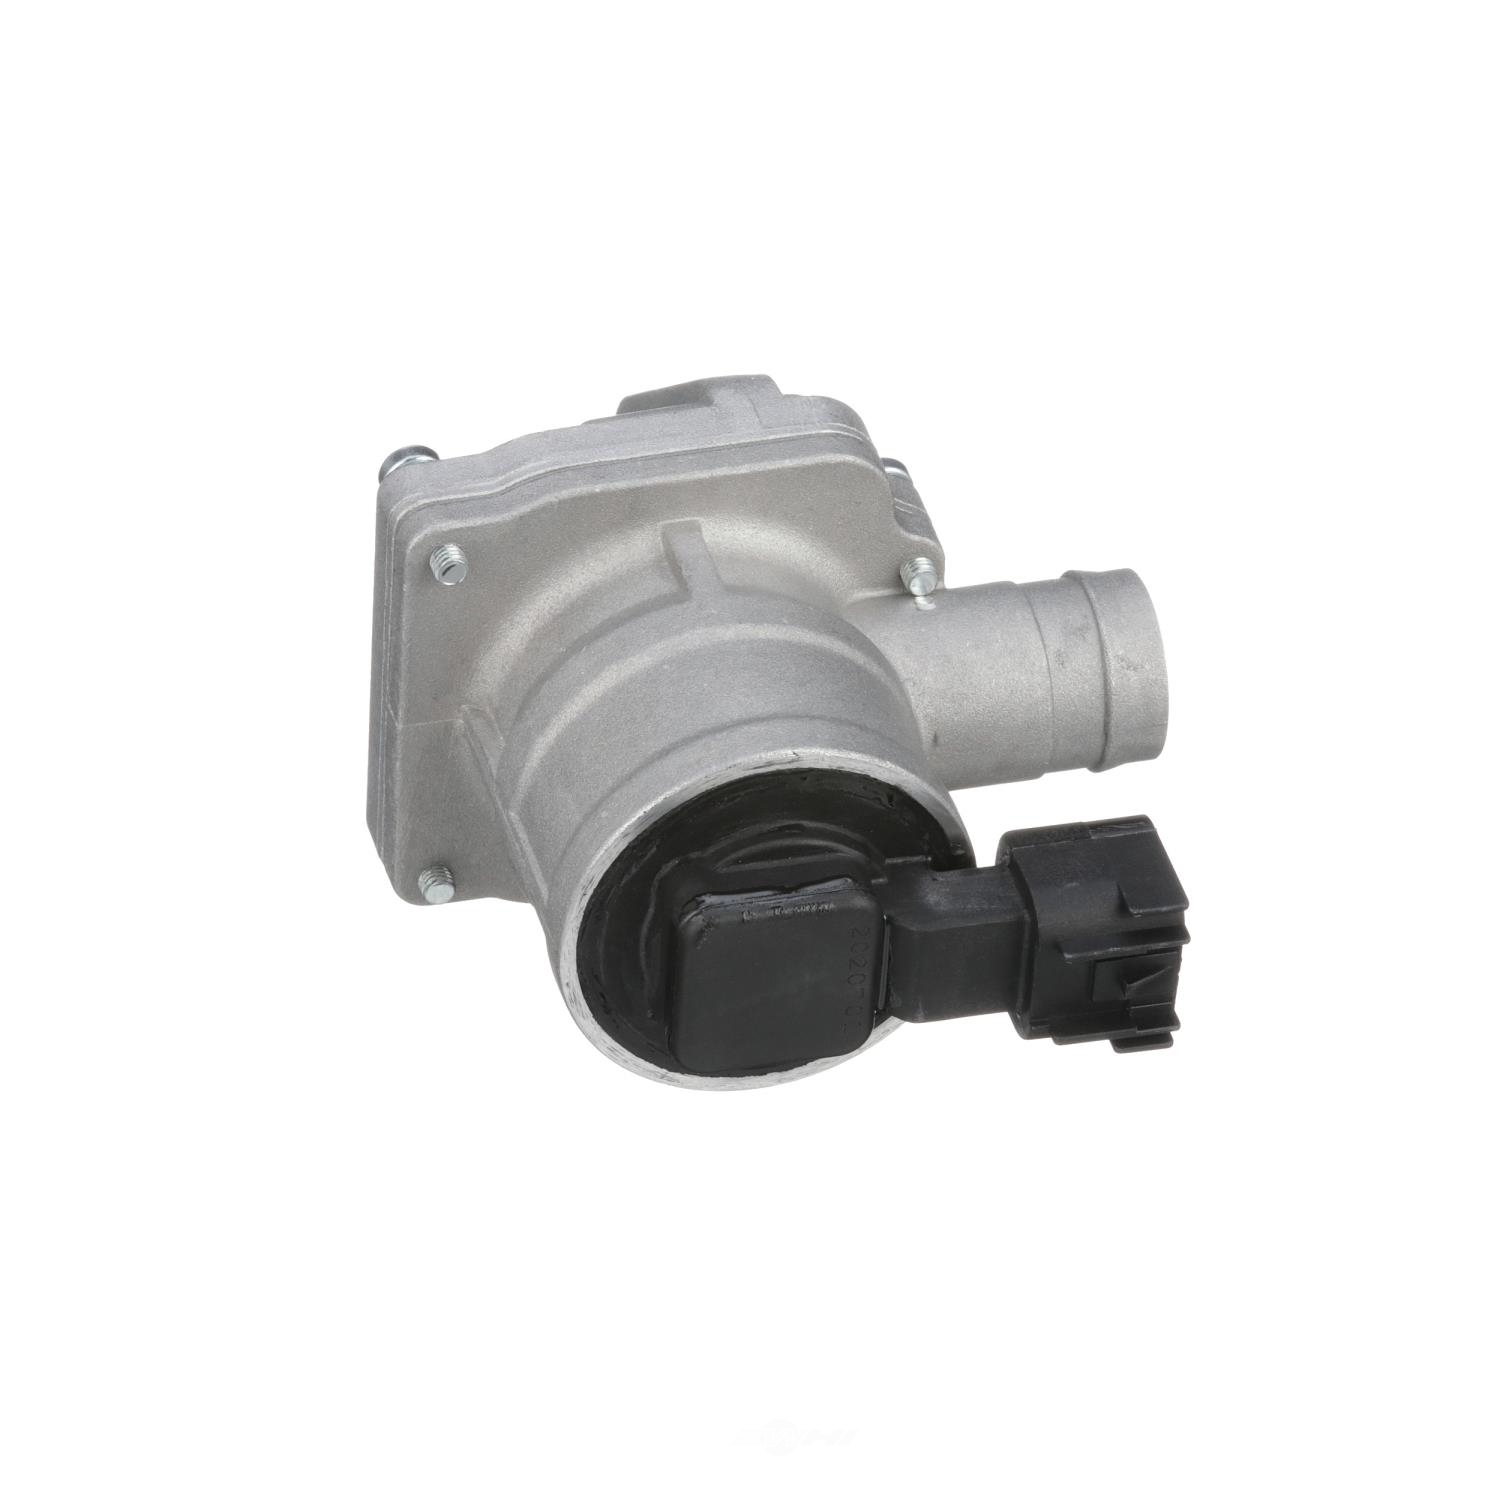 STANDARD MOTOR PRODUCTS - Secondary Air Injection Check Valve - STA DV133